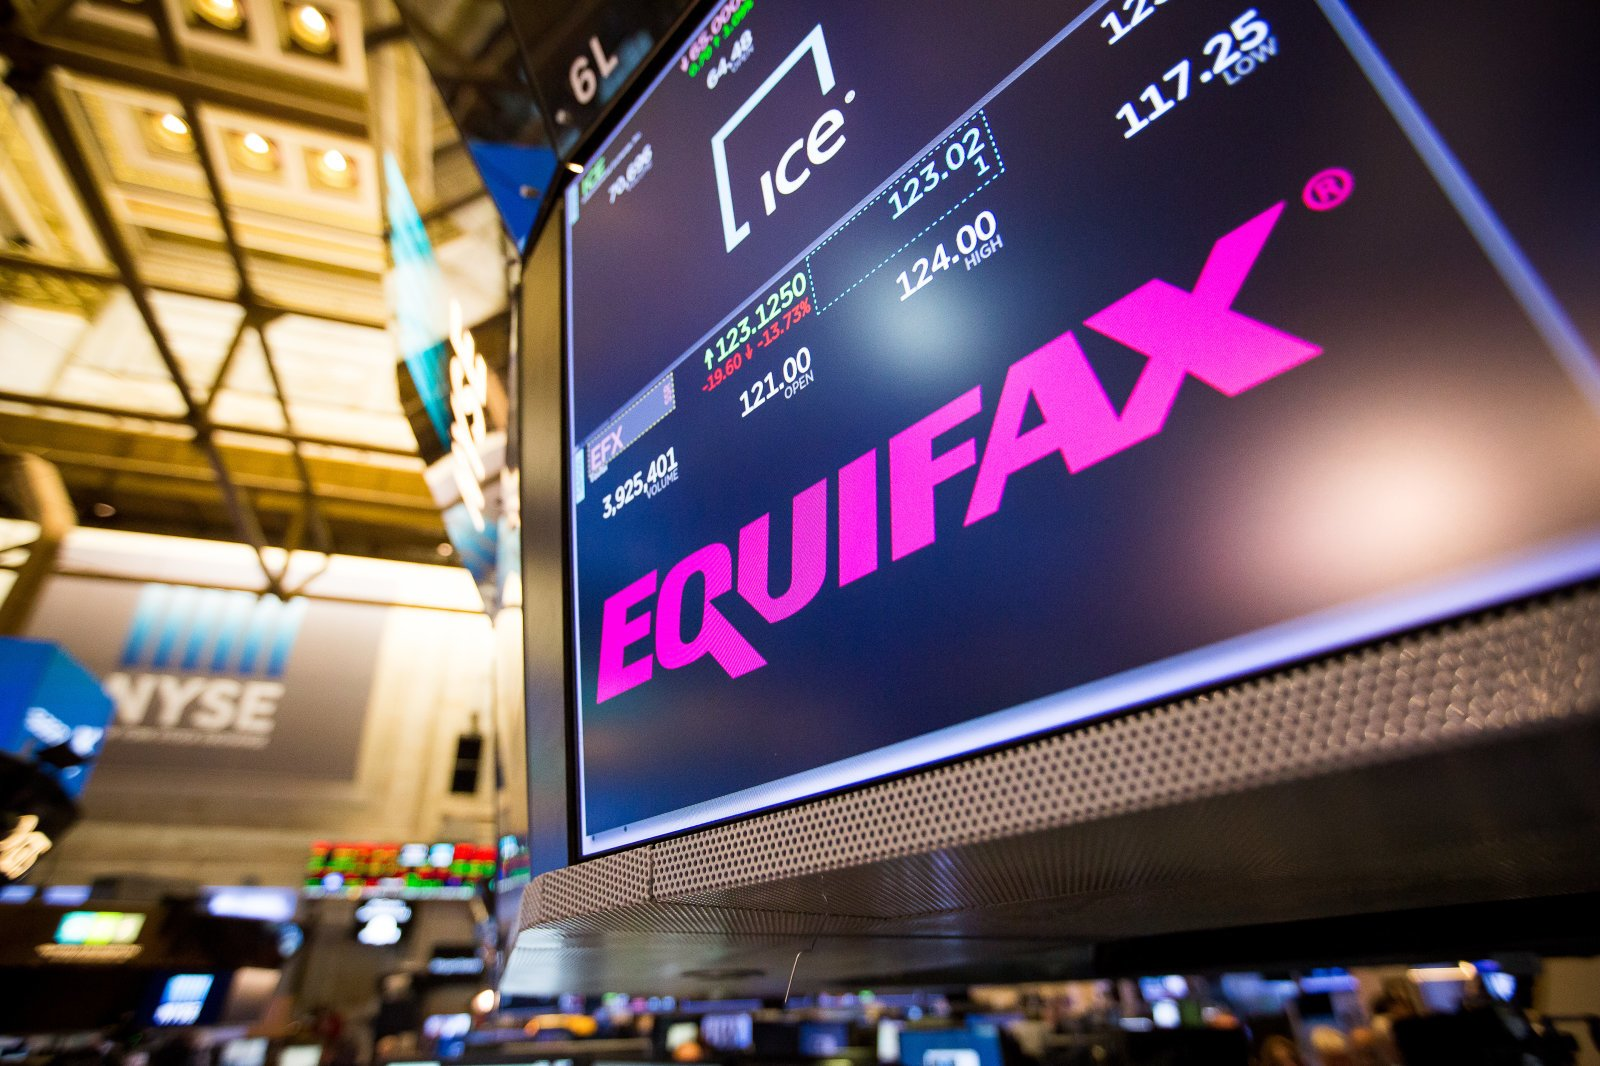 The Equifax hack netted the credit bureaus 14 billion in fees from customers